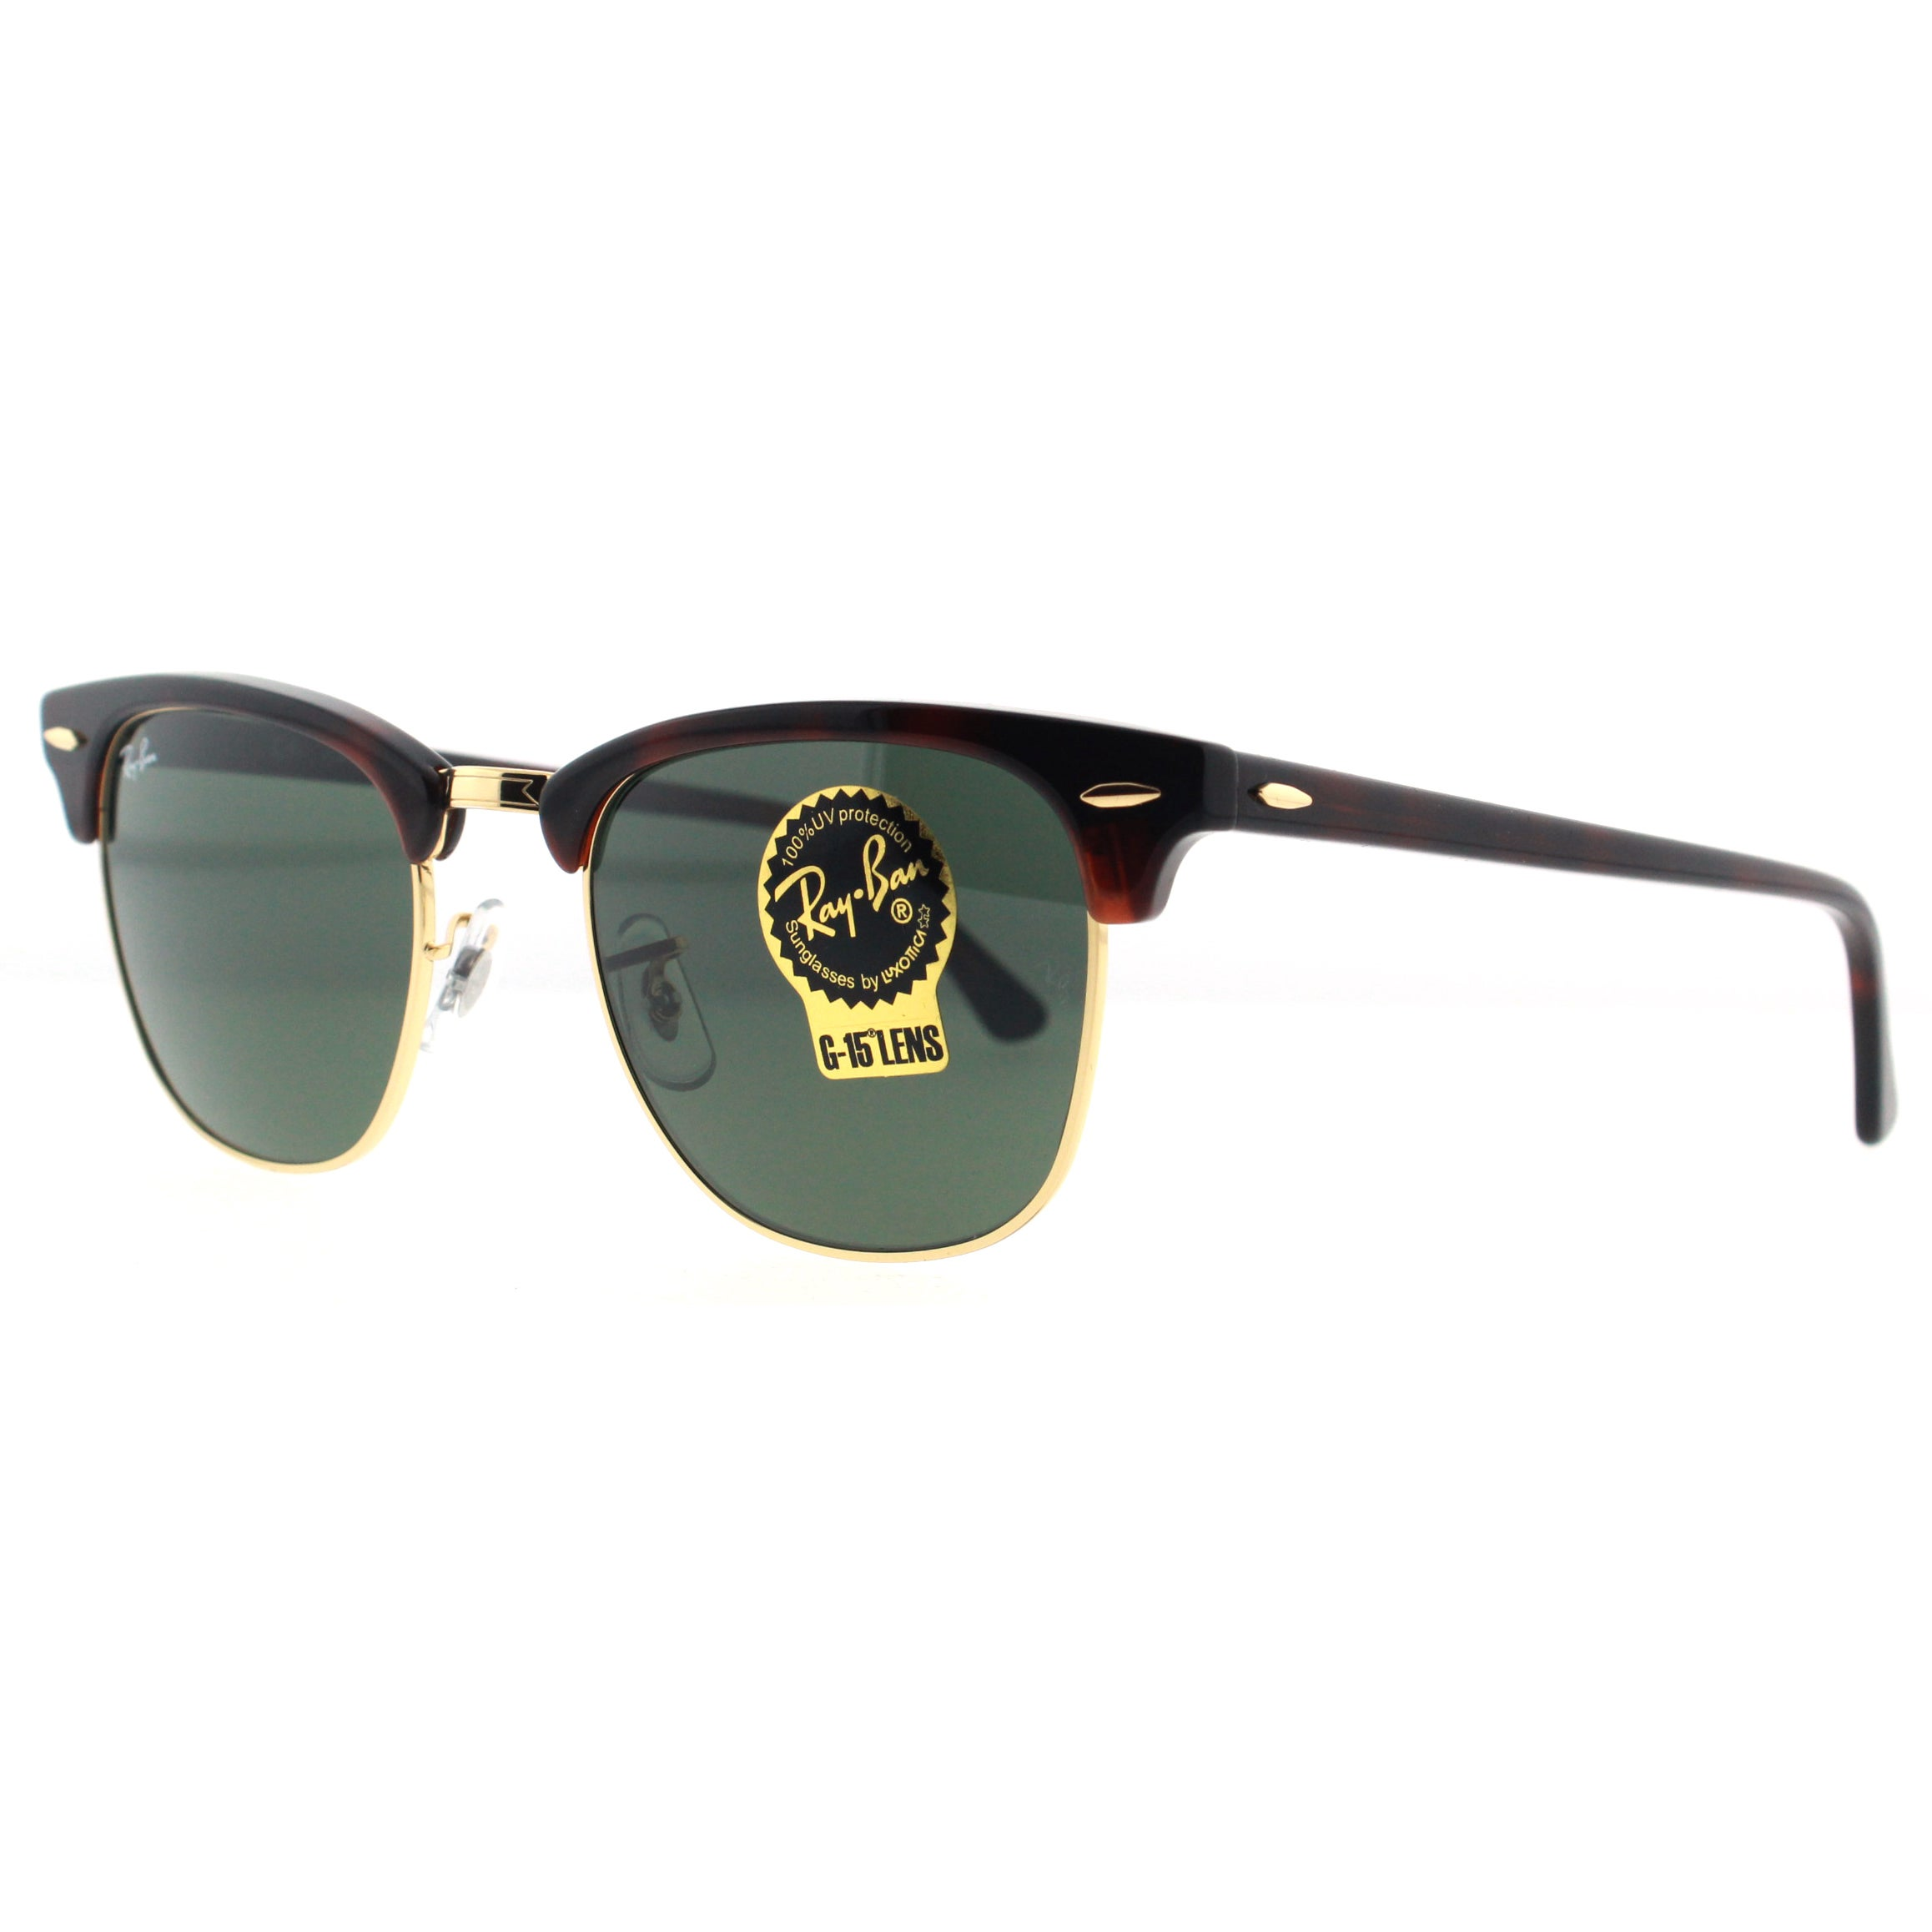 8bf604759bb61 Shop Ray-Ban Clubmaster RB 3016 Unisex Tortoise Frame Green Classic Lens  Sunglasses - Free Shipping Today - Overstock - 6852790